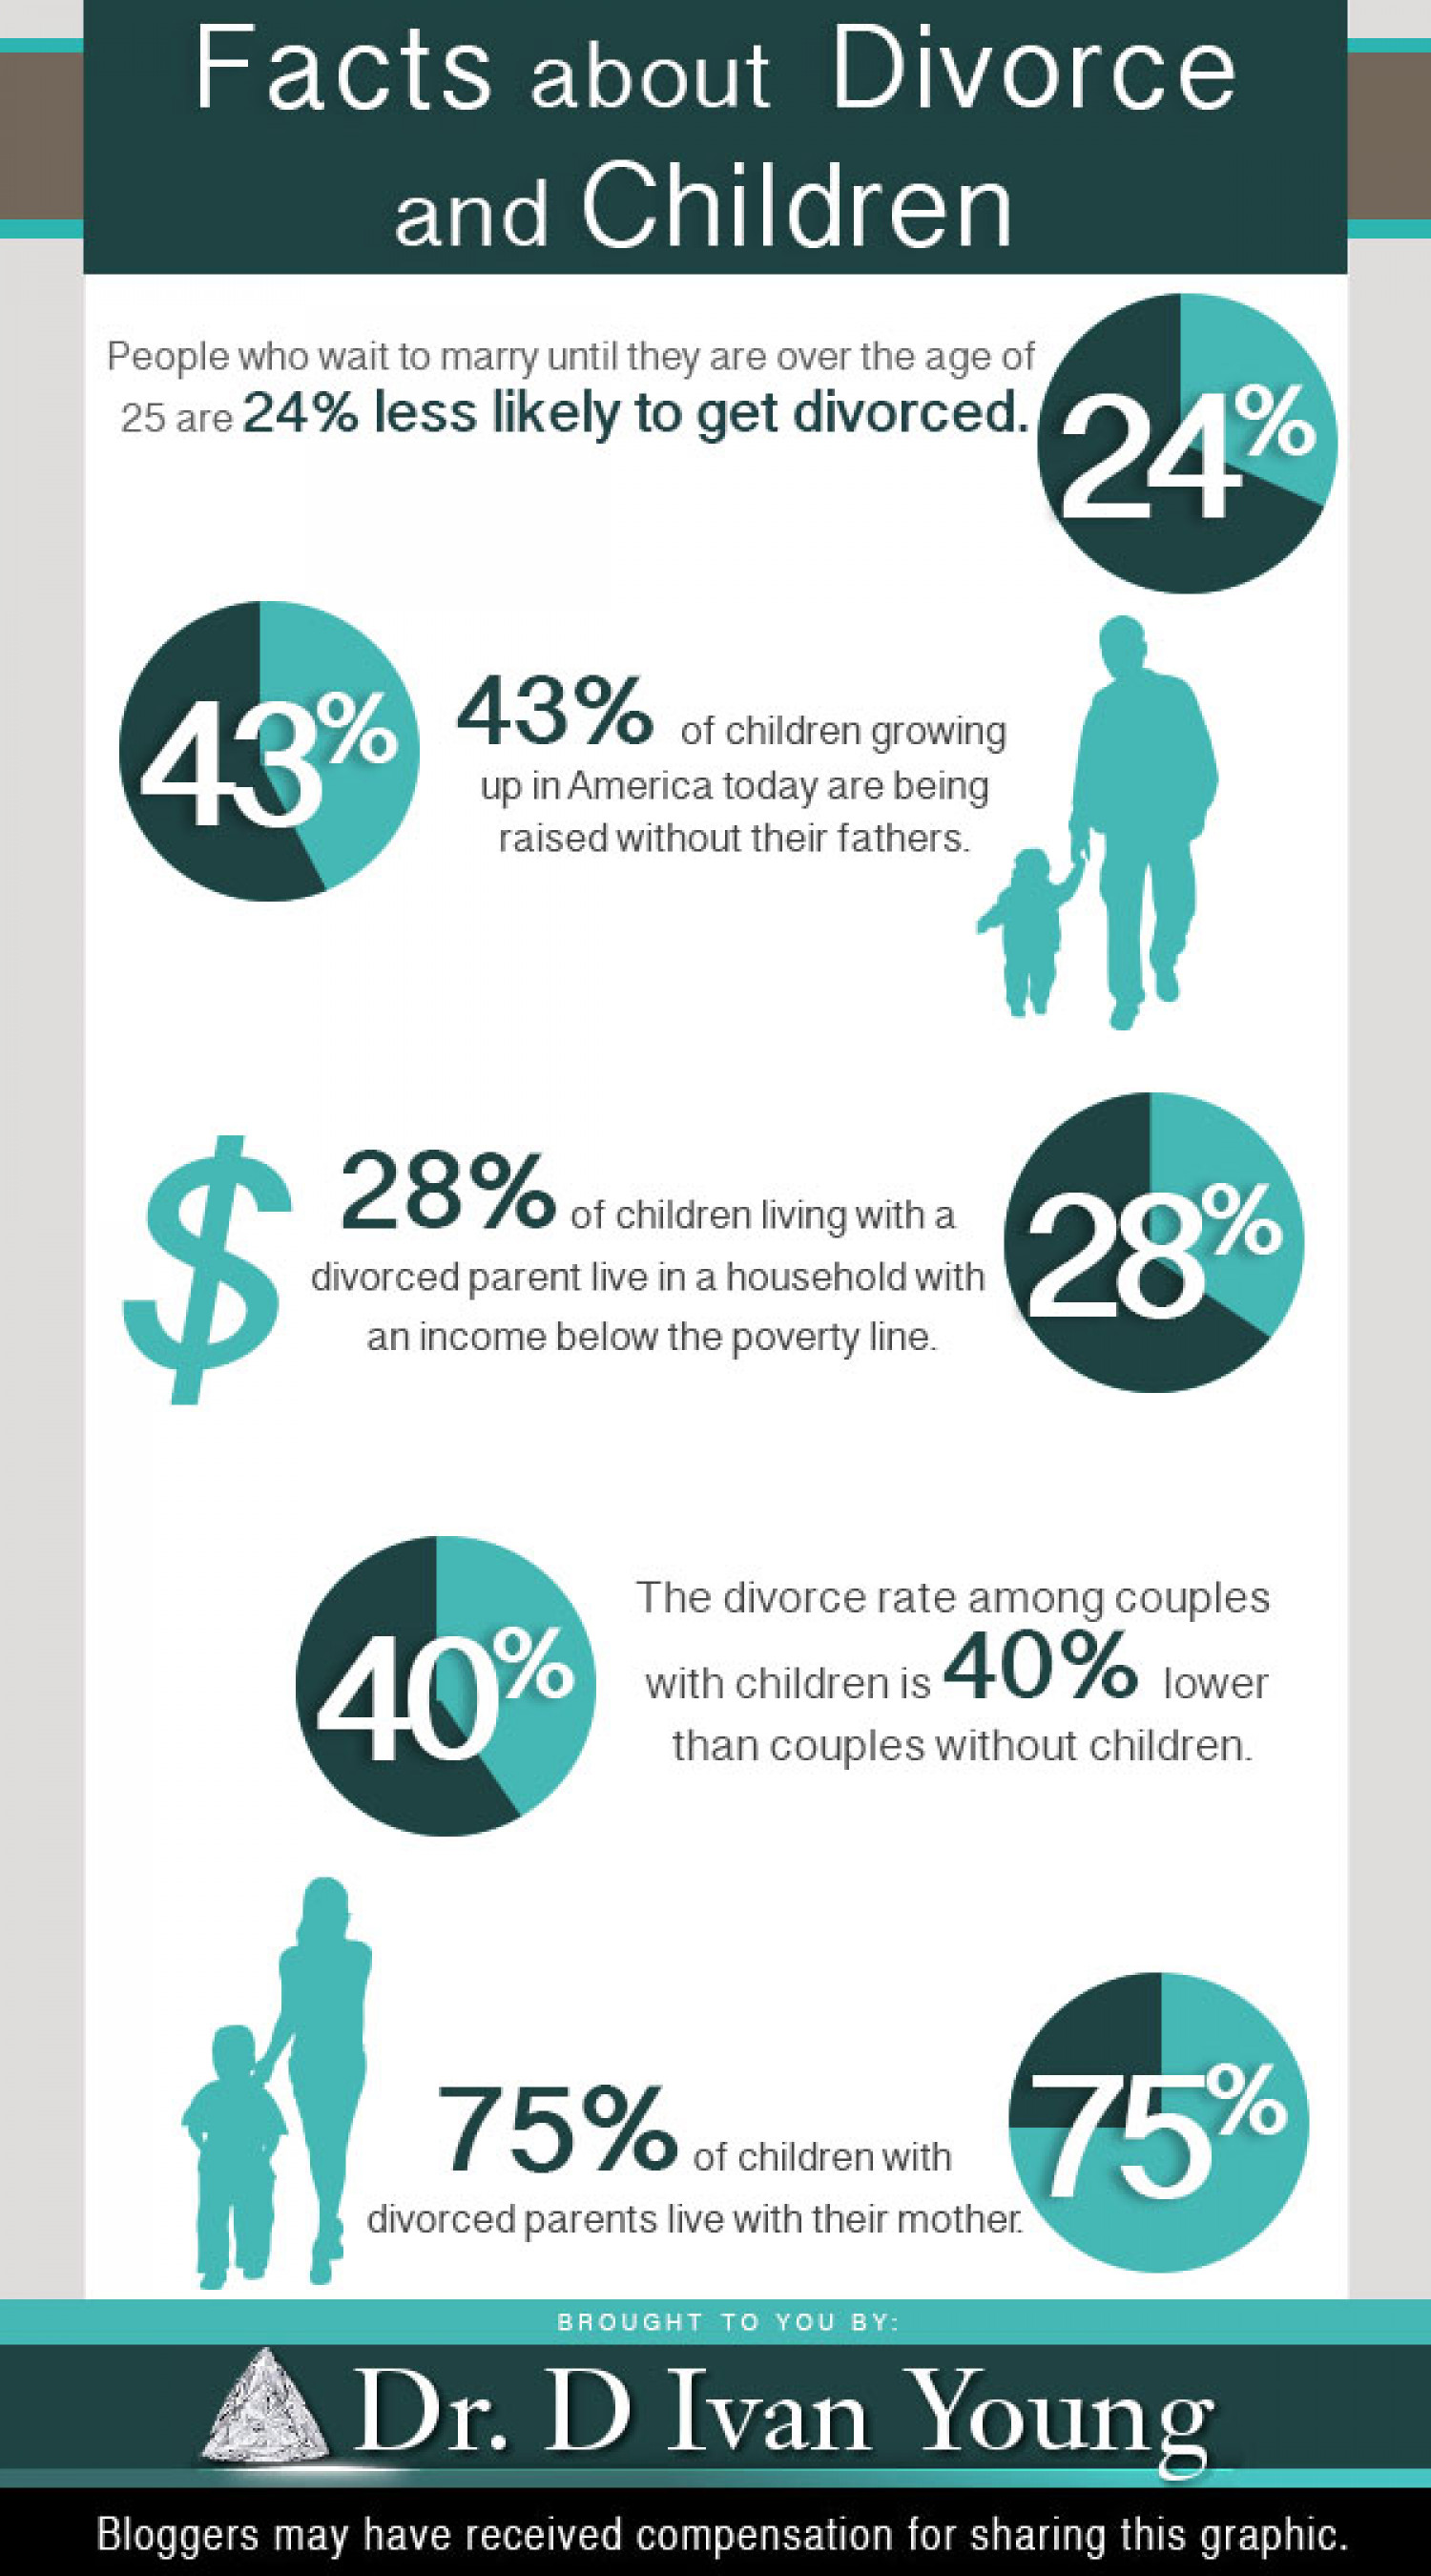 Facts About Divorce and Children Infographic